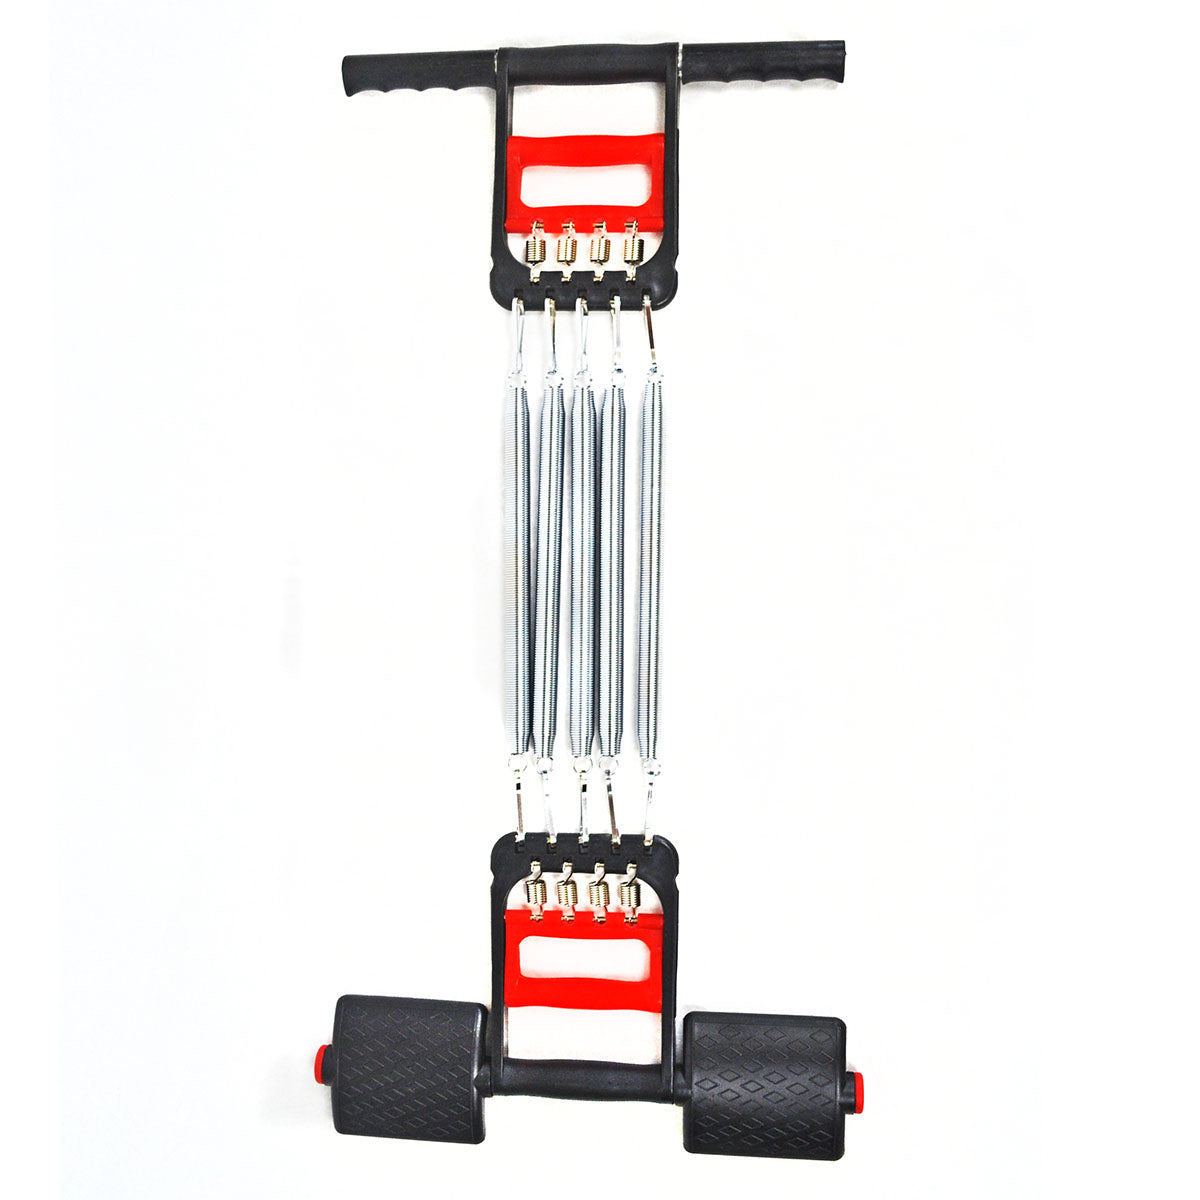 Wooden Handle Home Fitness Equipment Spring Exerciser Chest Expander Pull-up